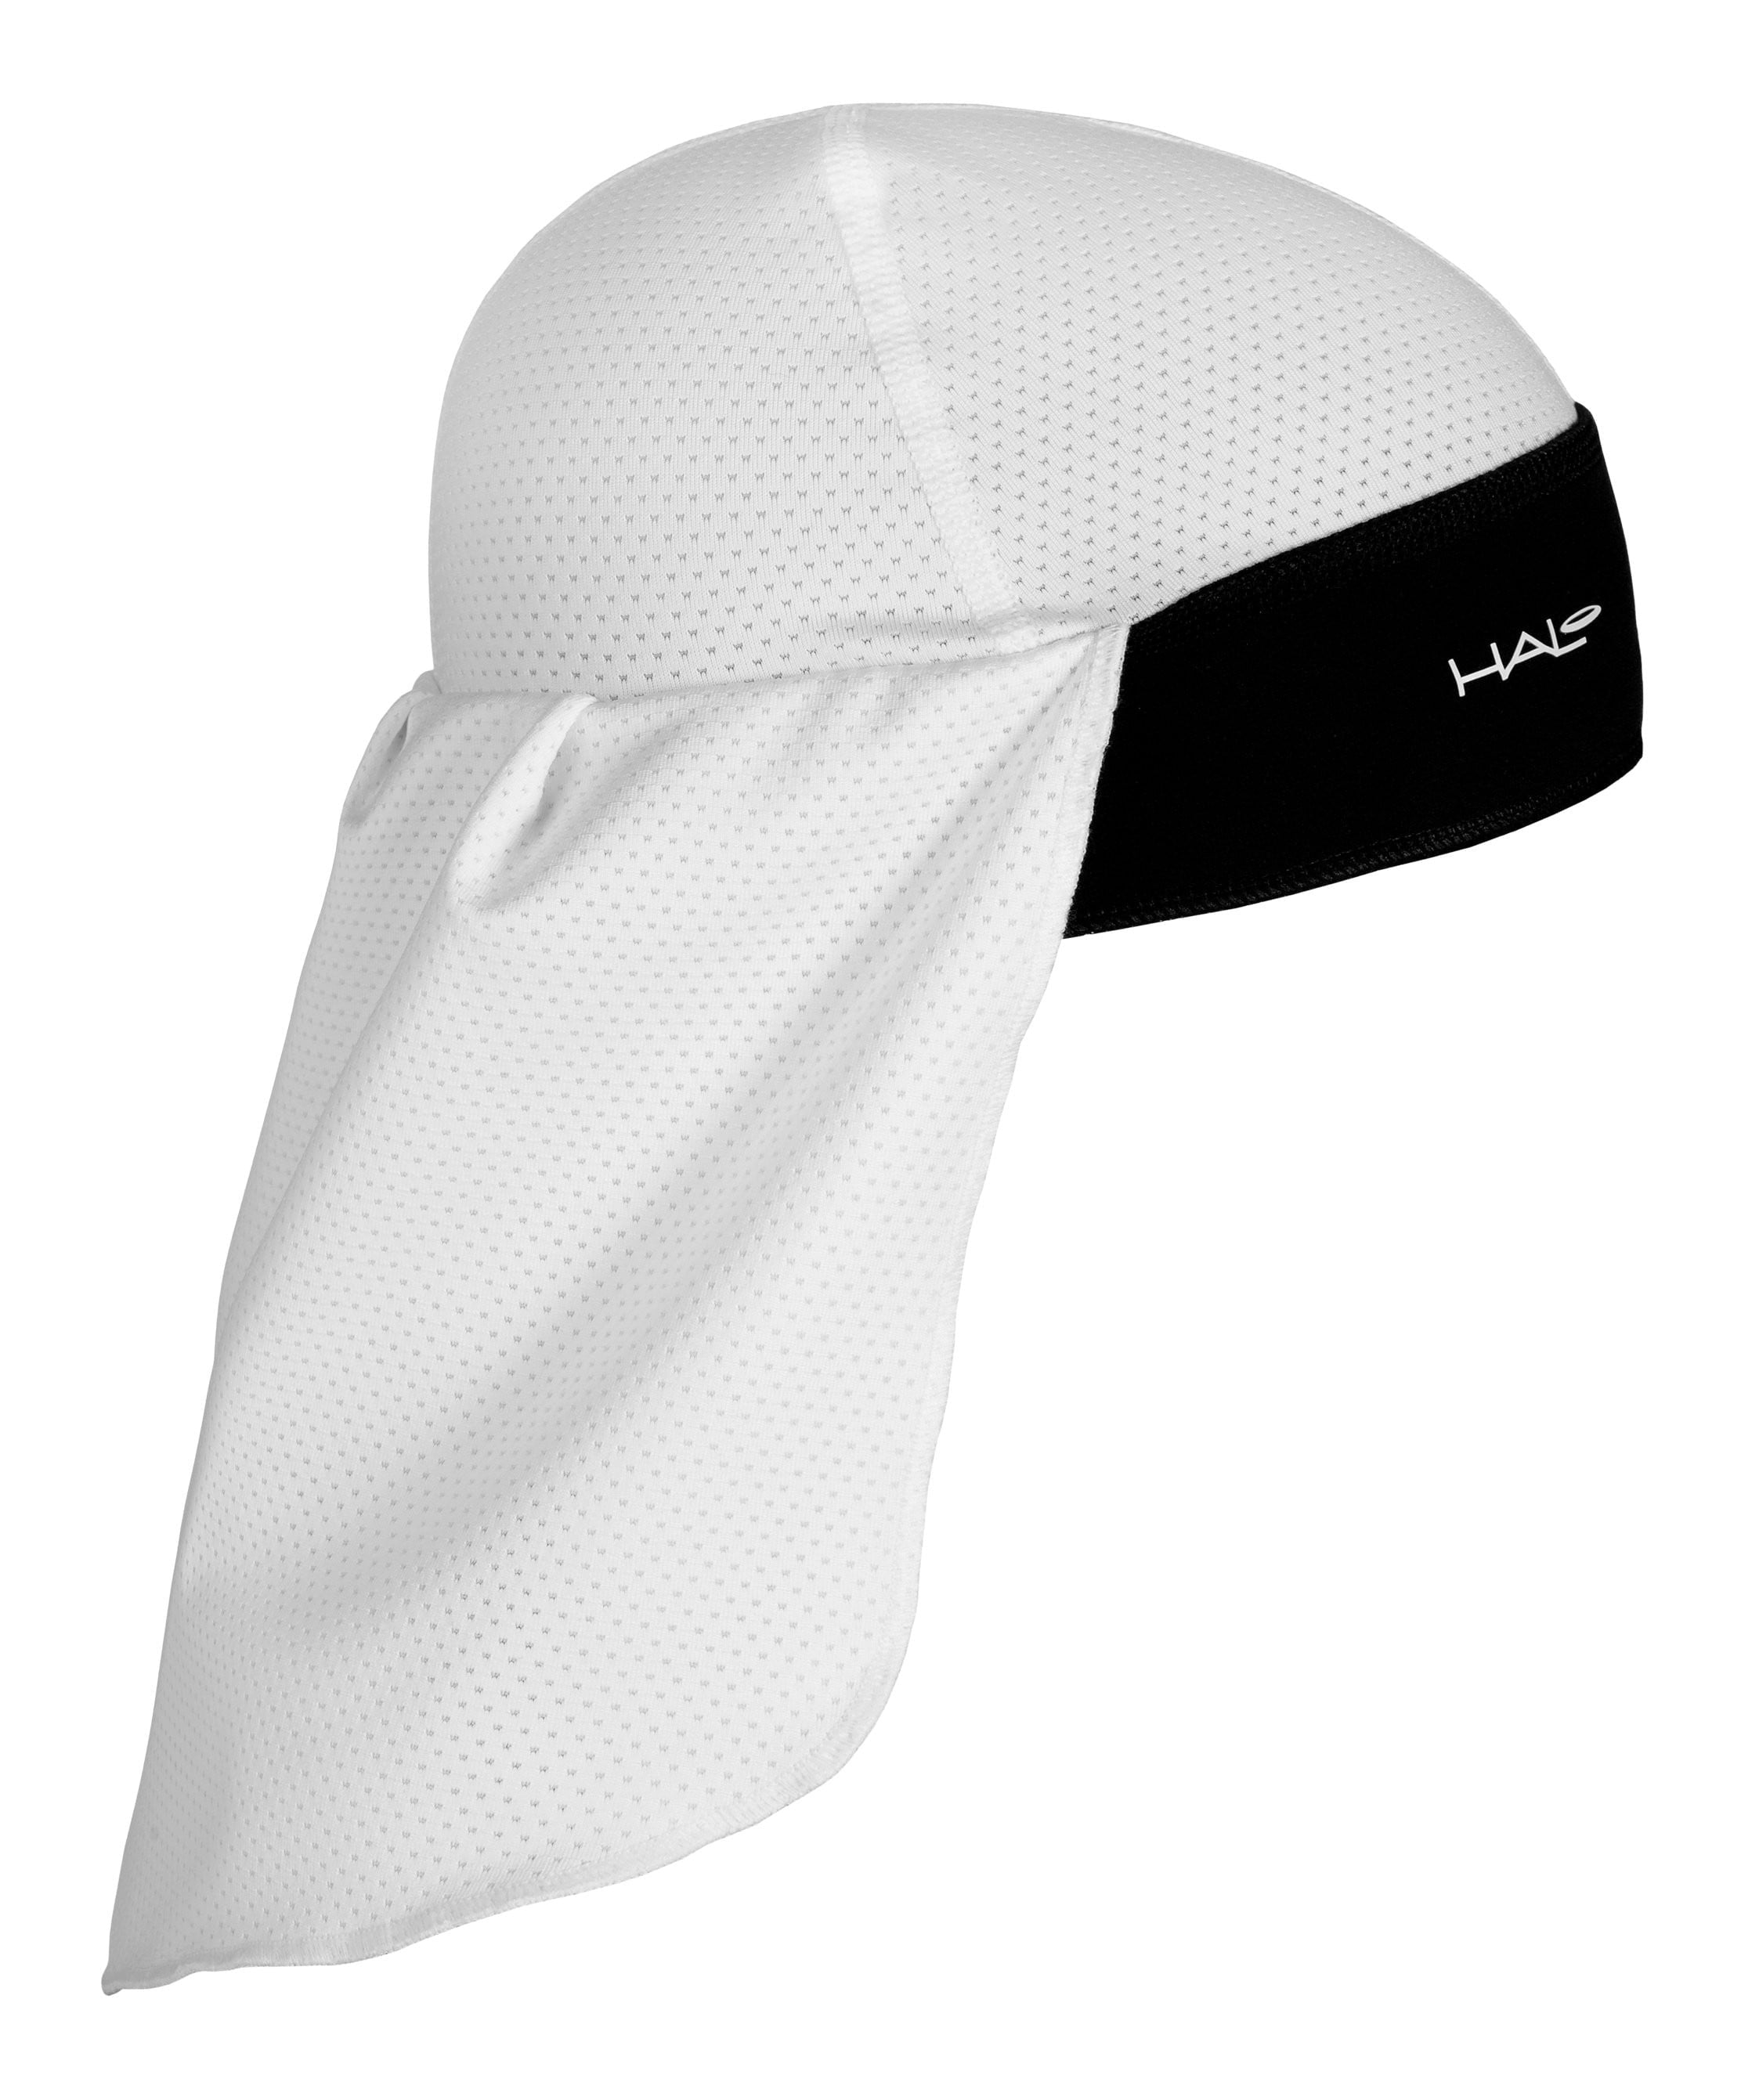 Halo Solar Skull Cap with neck protection - Haloheadband Canada